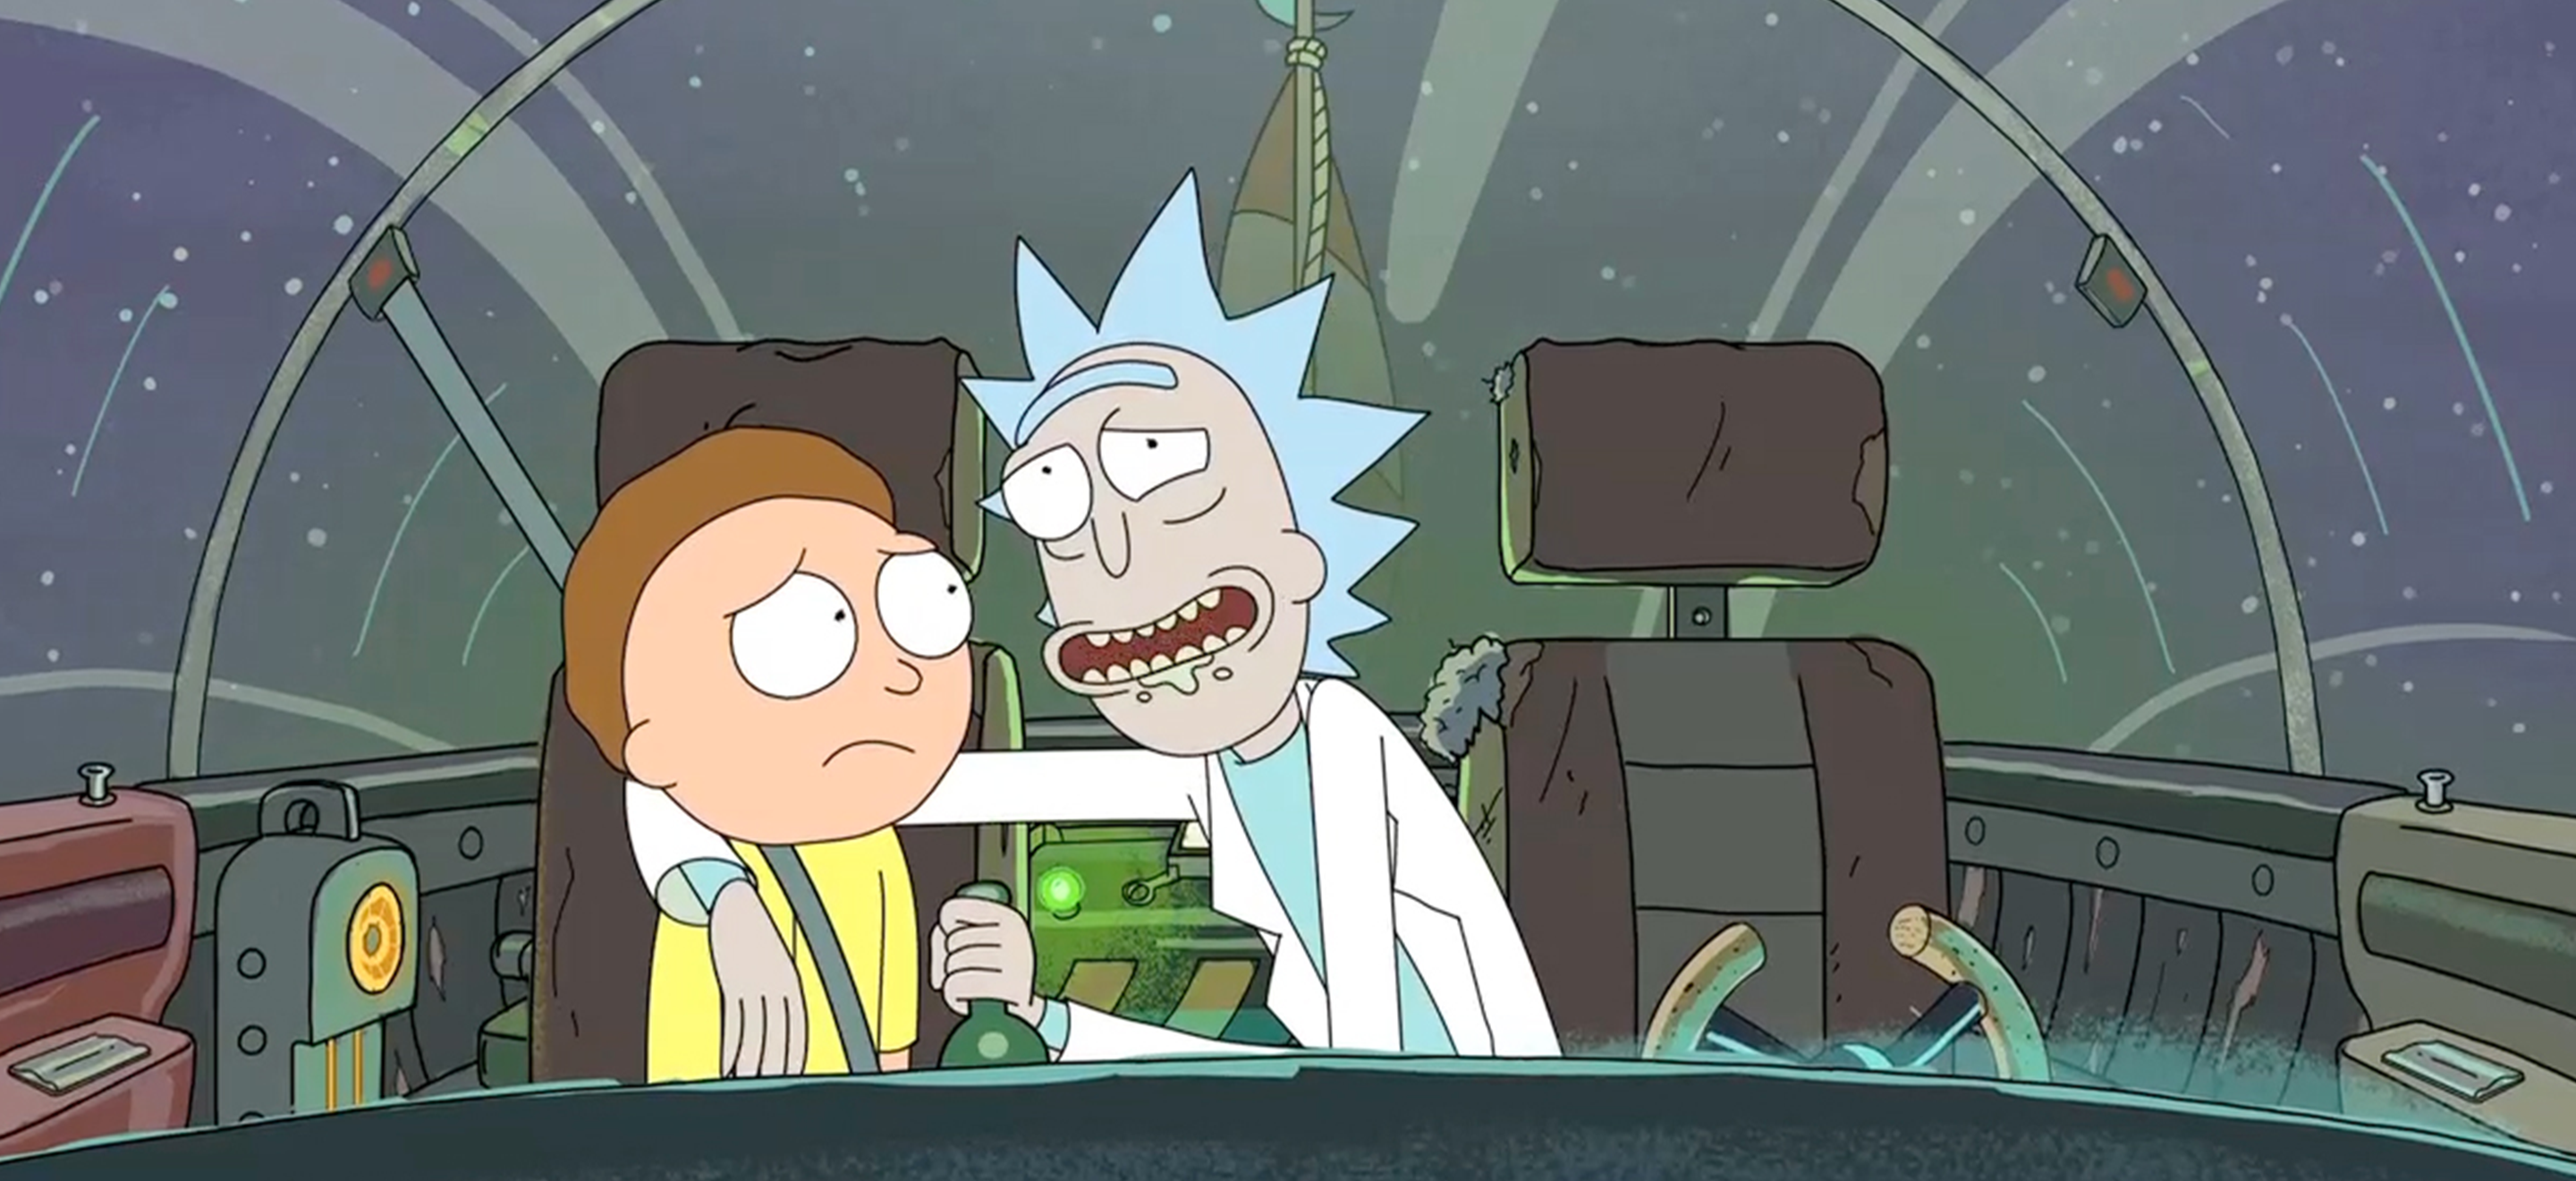 https://www.micromania.fr/on/demandware.static/-/Sites-Micromania-Library/default/dw9c2142fc/fanzone/dossier/rick&morty/RICKANDMORTY_Header.png